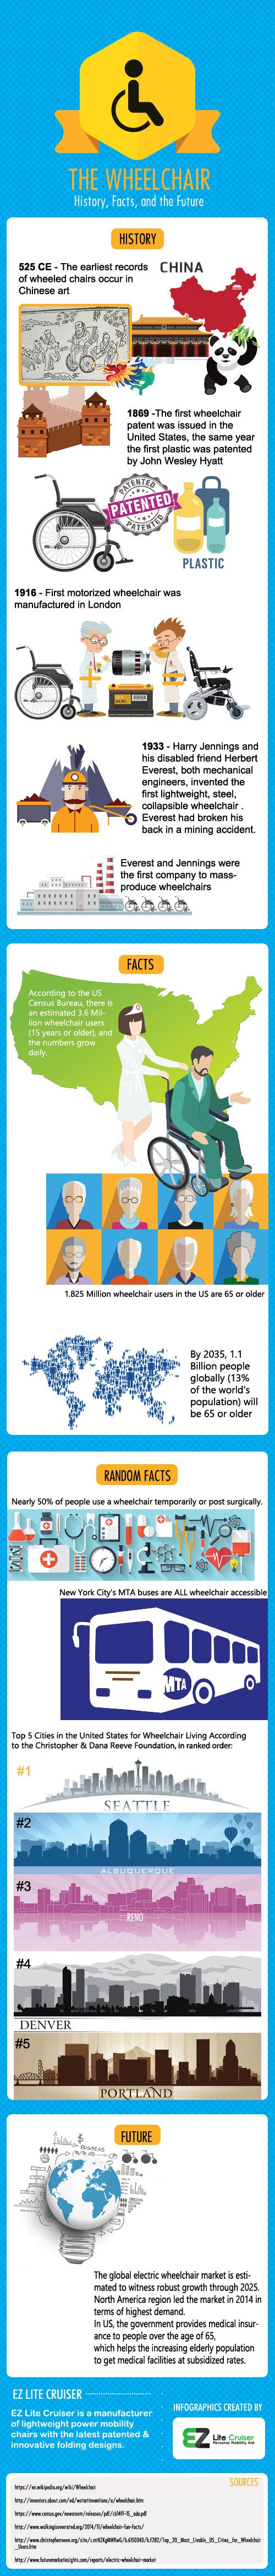 Historical Facts, Figures, and the Future of Wheelchair Usage